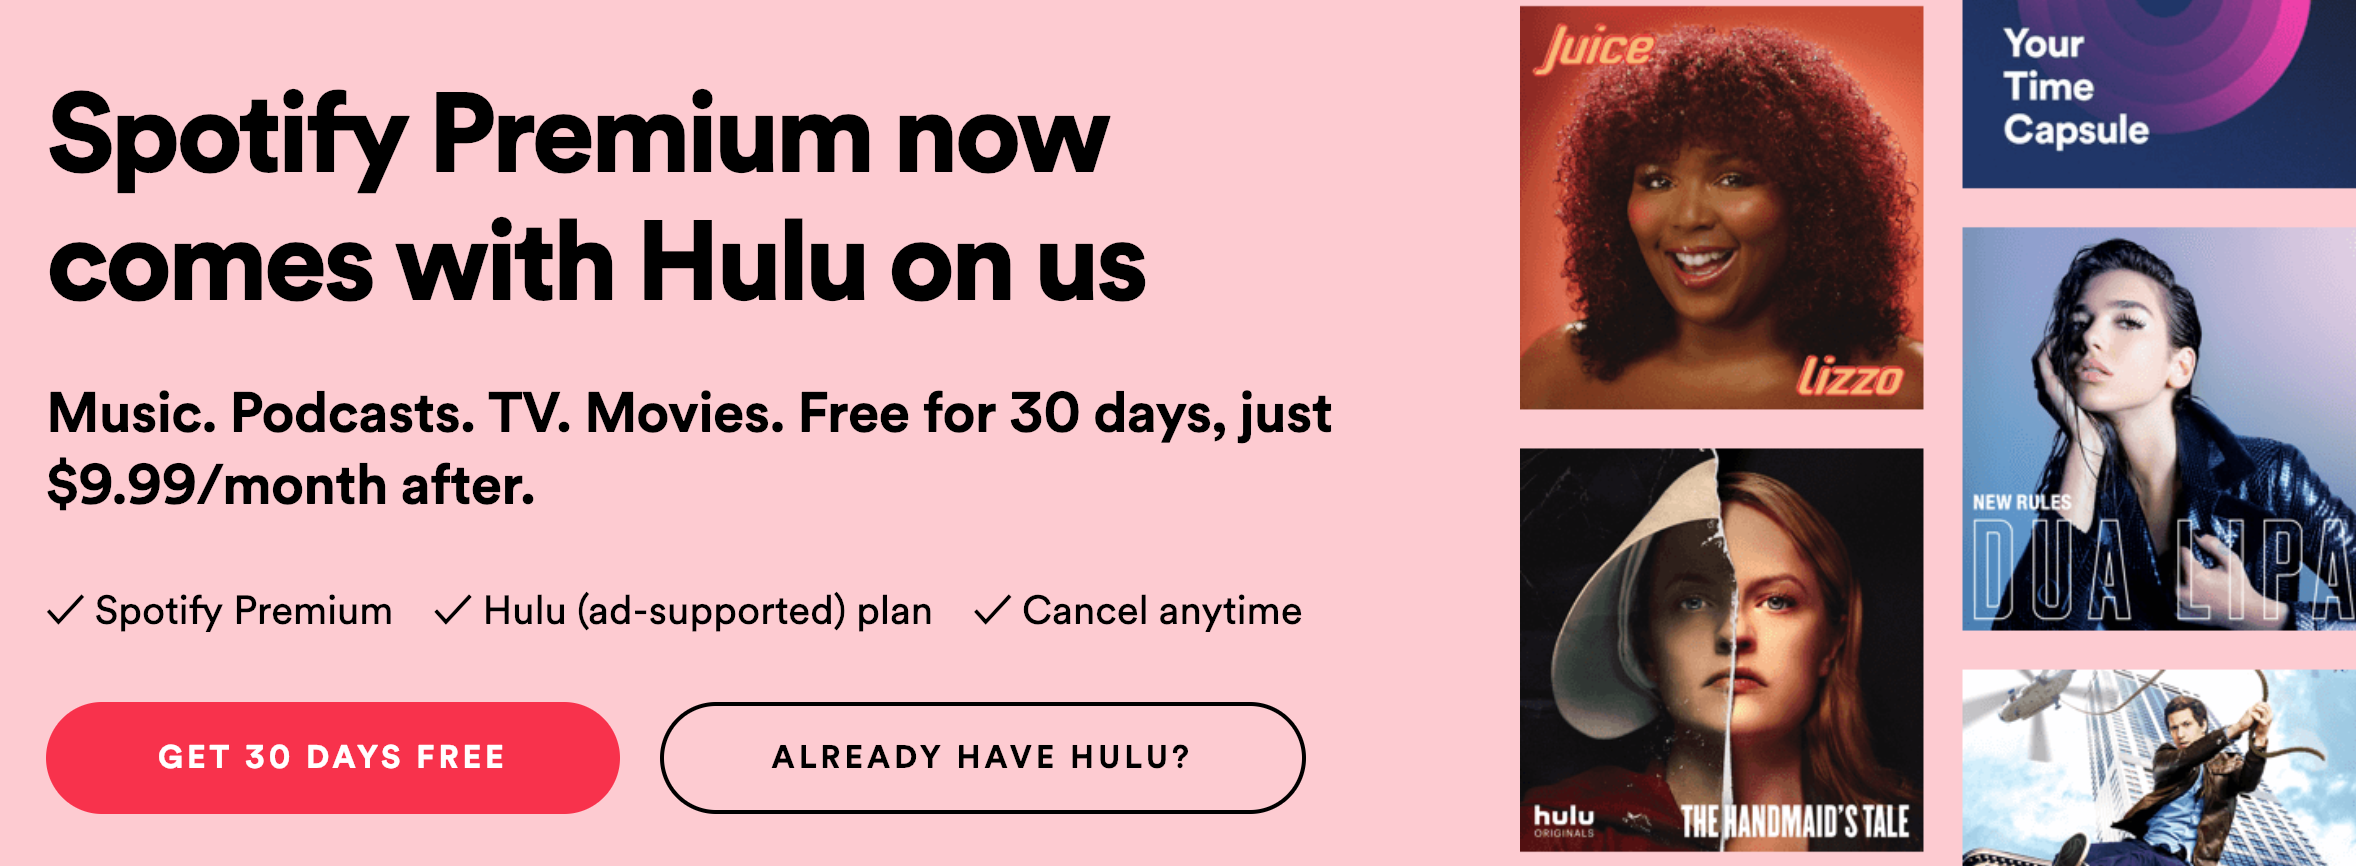 Update: Working for existing subs] New Spotify Premium